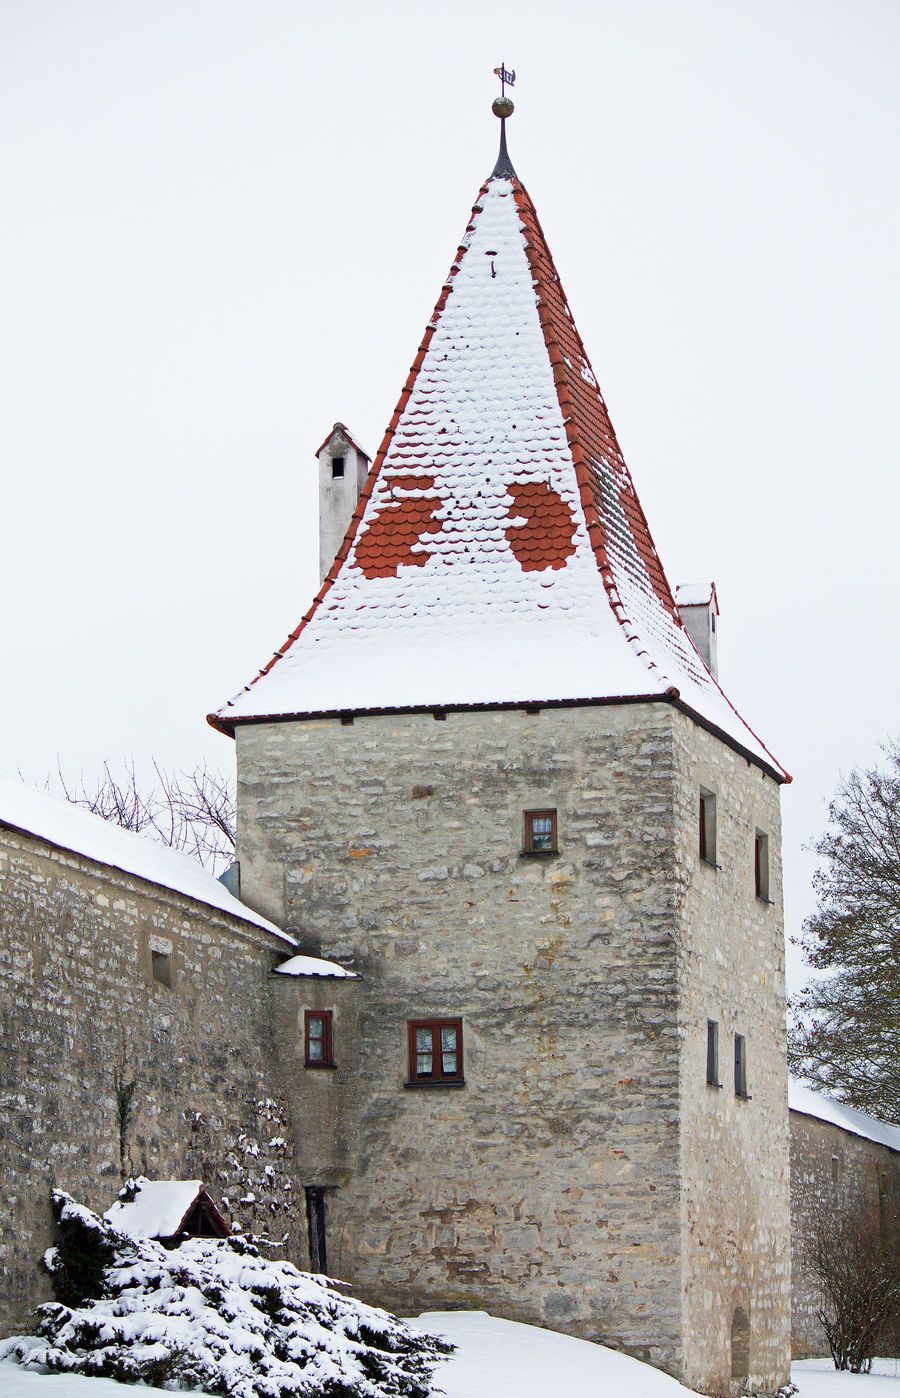 Bayern Berching Castle City Wall Cold Temperature Invierno Nieve No People Oberpfalz Outdoors Por La Nieve Roof Schnee Snow Snowed In Snowing Stadtmauer Torre Tower Turm Weiss White Winter